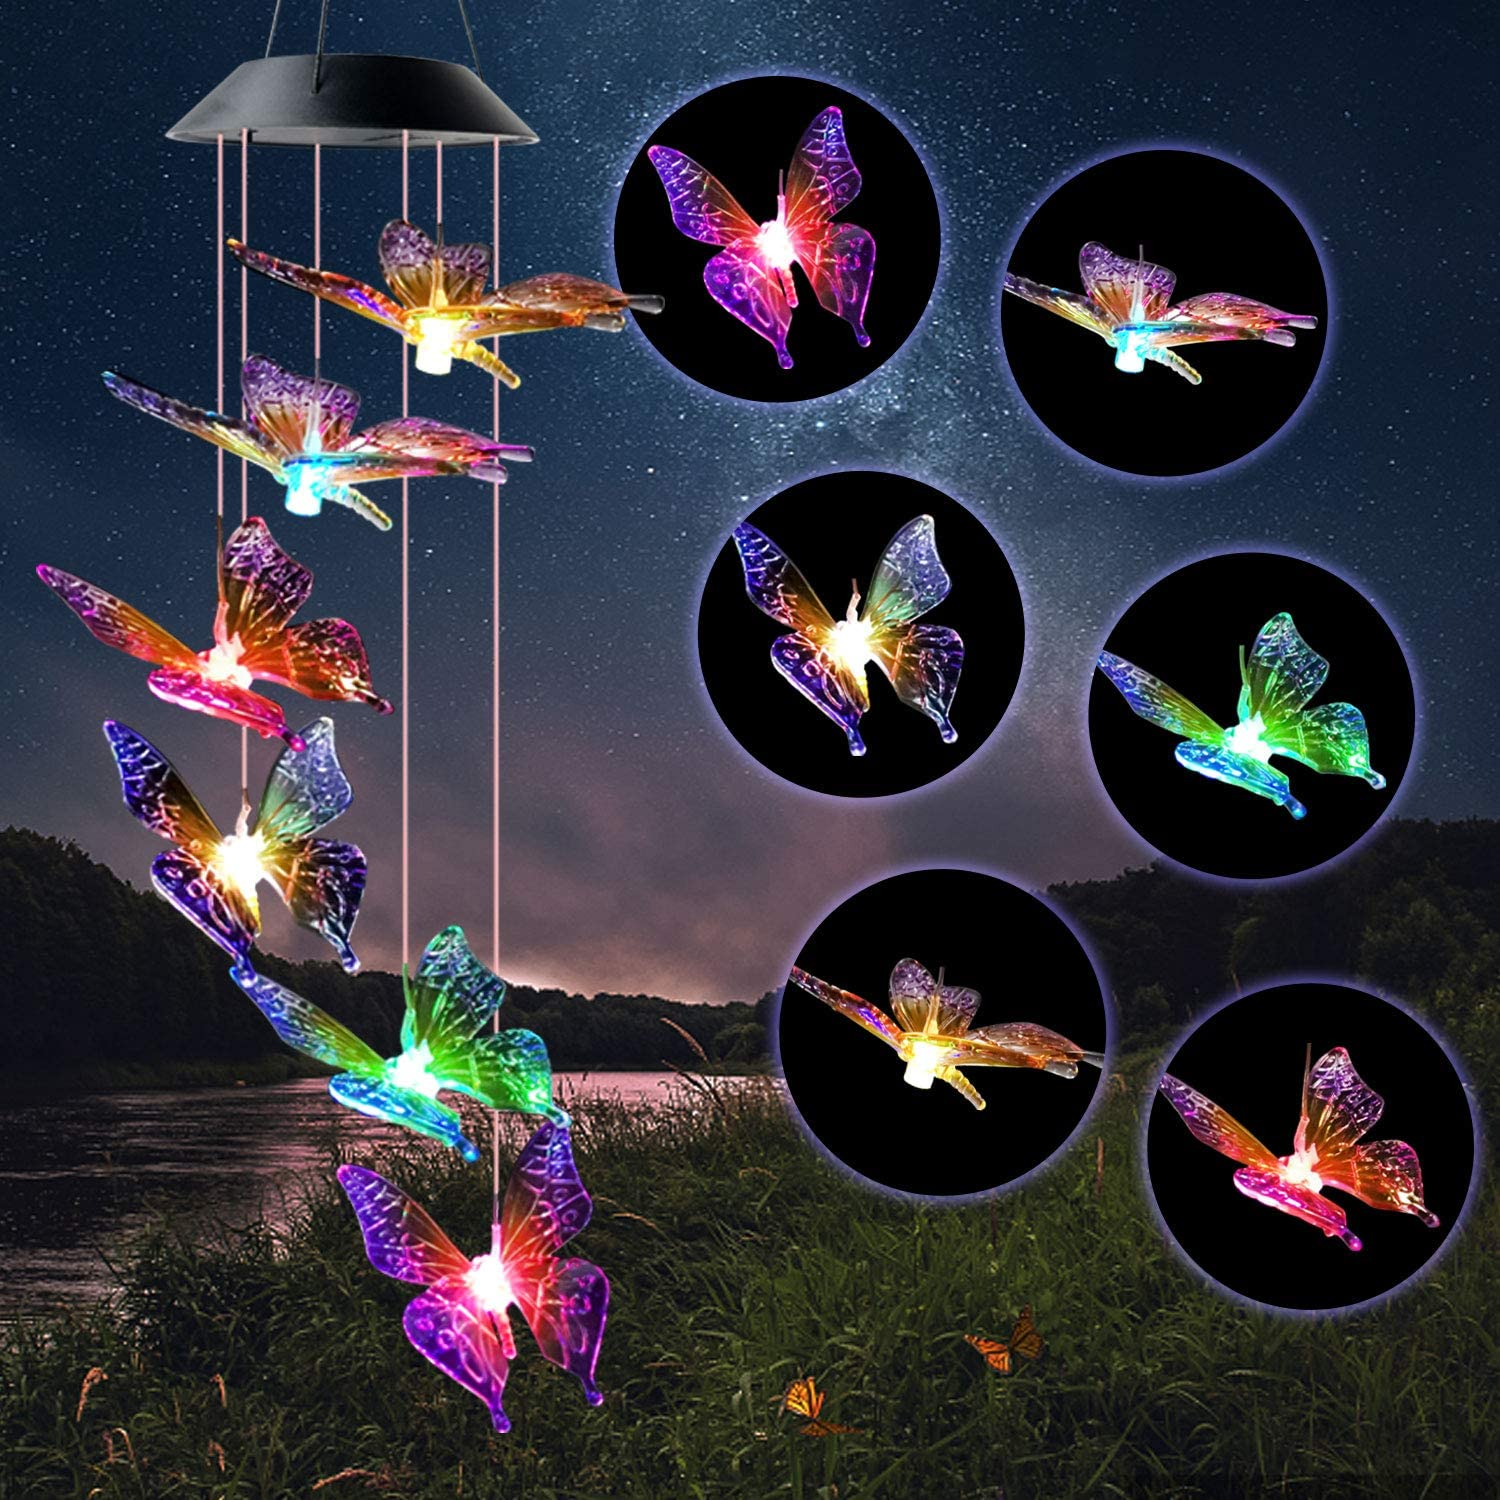 JOBOSI Butterfly Wind Chimes Gifts for mom Solar Wind Chime Butterfly Wind Chimes Glowing Wind Chimes Outdoor Decor mom Gifts Thanksgiving Gift Grandma GiftsS Hook Wind Chimes Wind Chimes Gifts